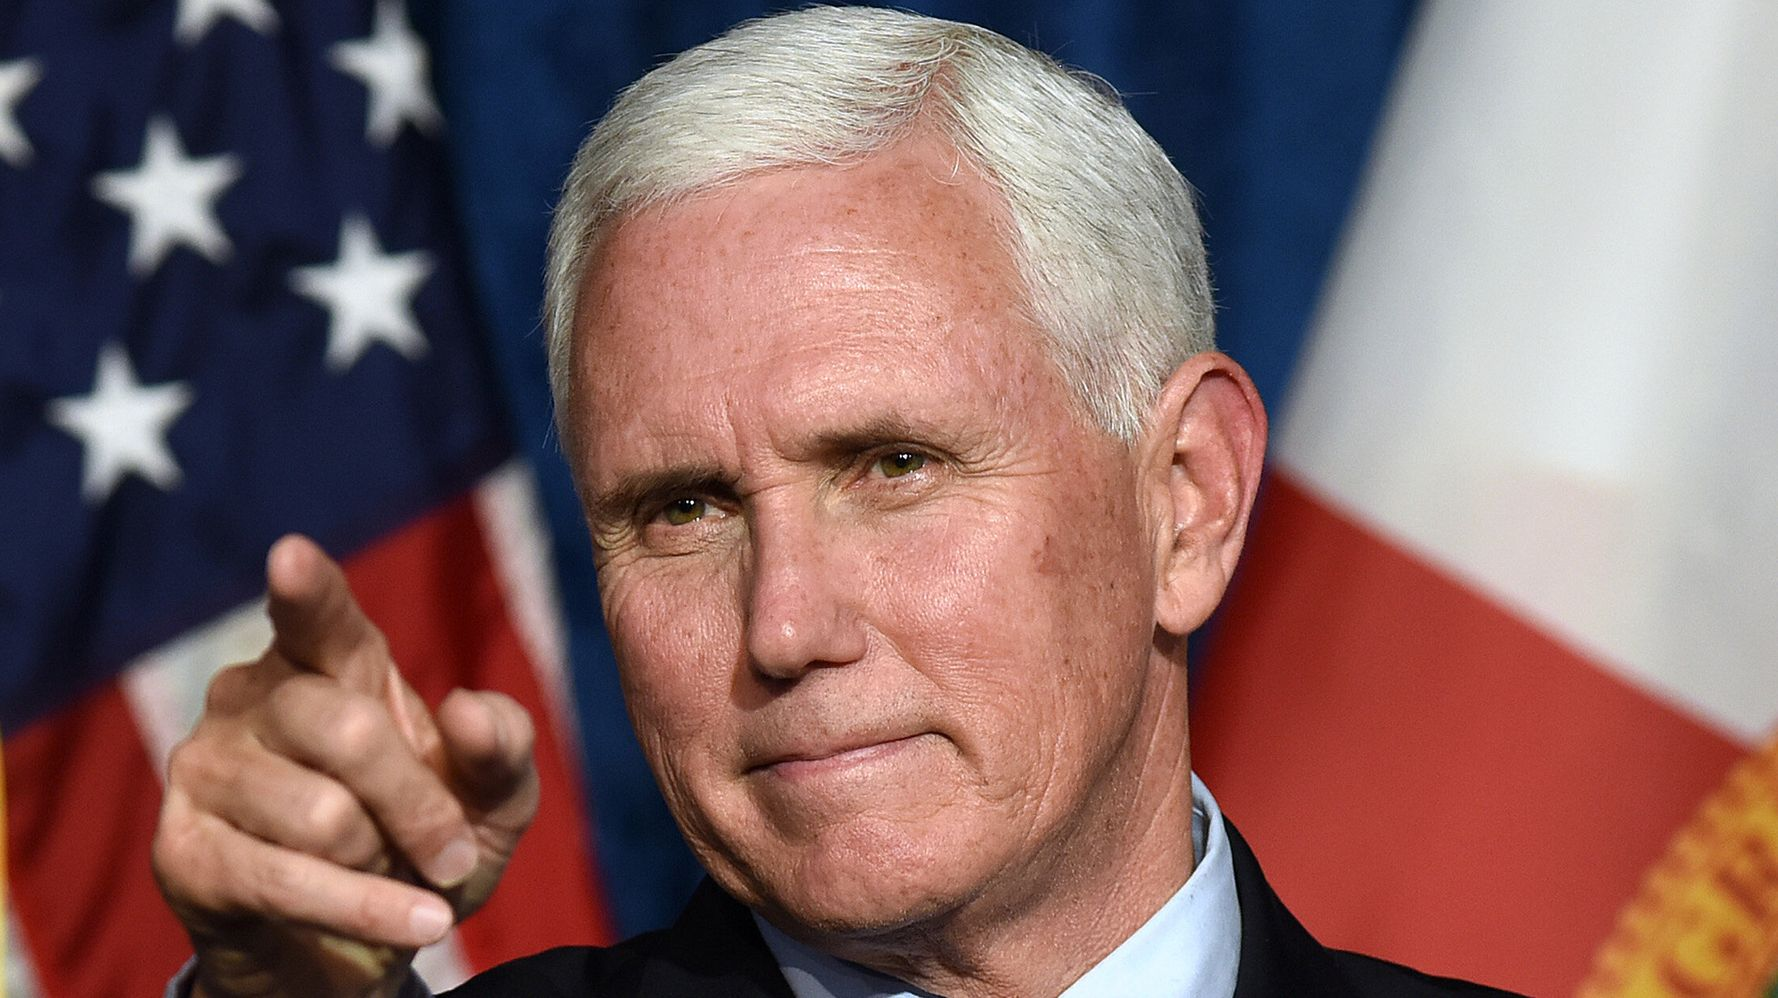 Westlake Legal Group 5e252c122400003000dd11da The Curse Of Pence? Fans Blame VP After Packers Get Trounced By 49ers.